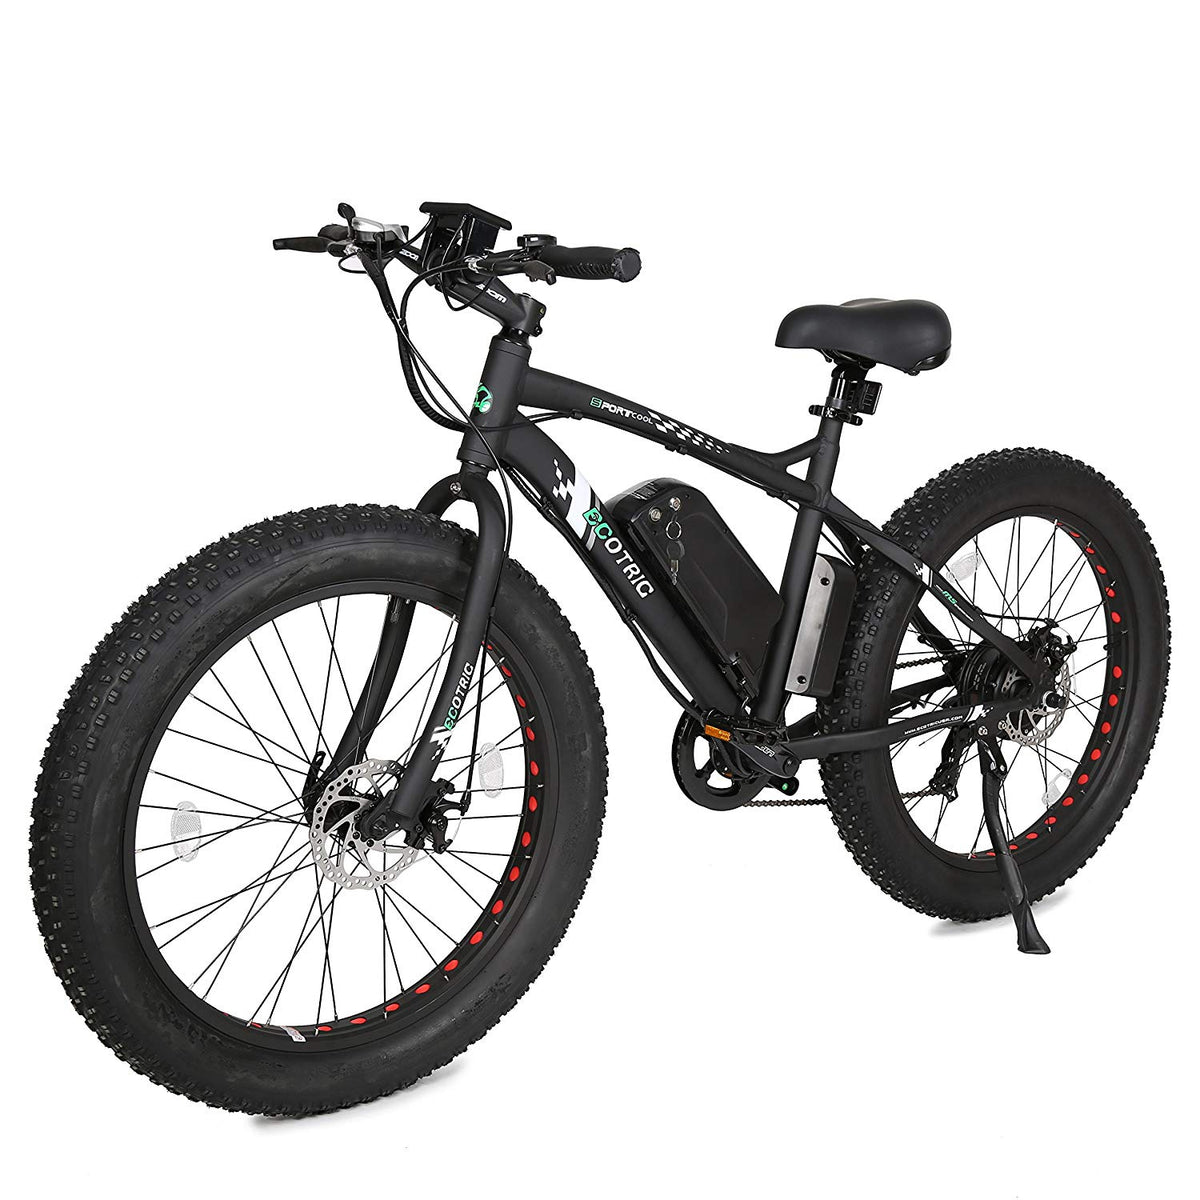 2021 Ecotric Fat Tire 36V 500W 7 Speeds Beach Snow Electric Bike, FAT26S900